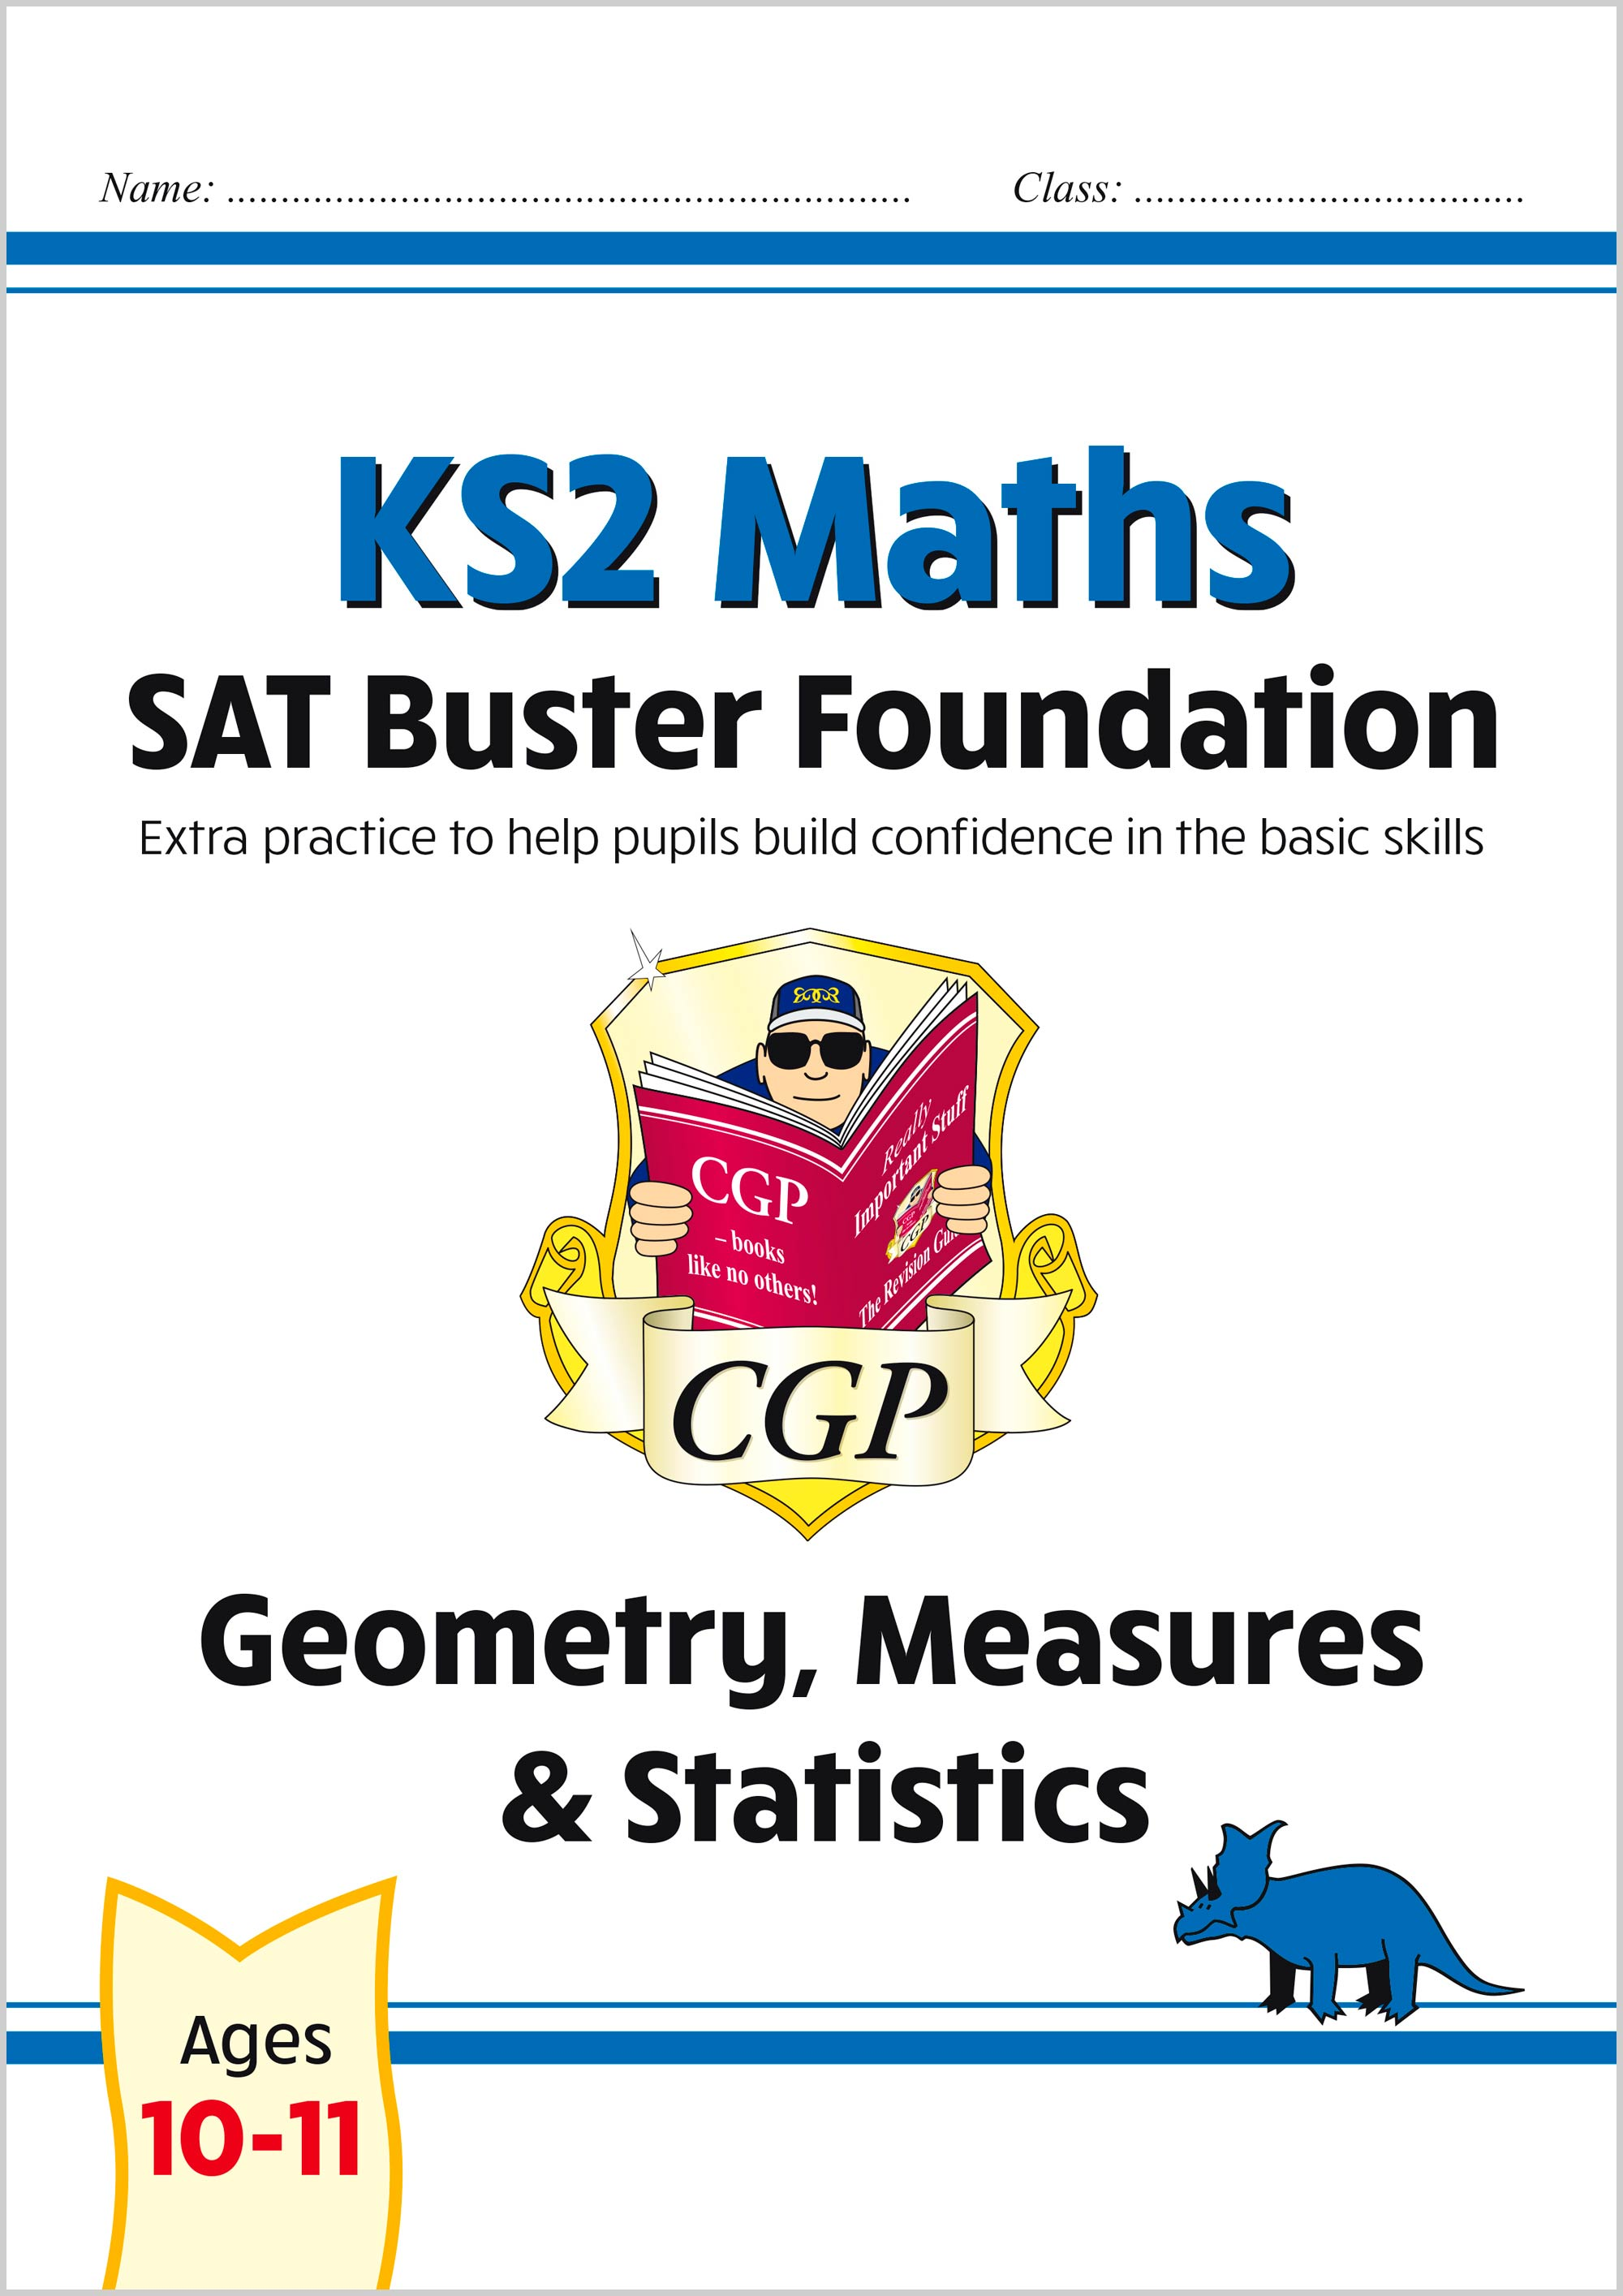 M6FSMD21 - New KS2 Maths SAT Buster Foundation: Geometry, Measures & Statistics